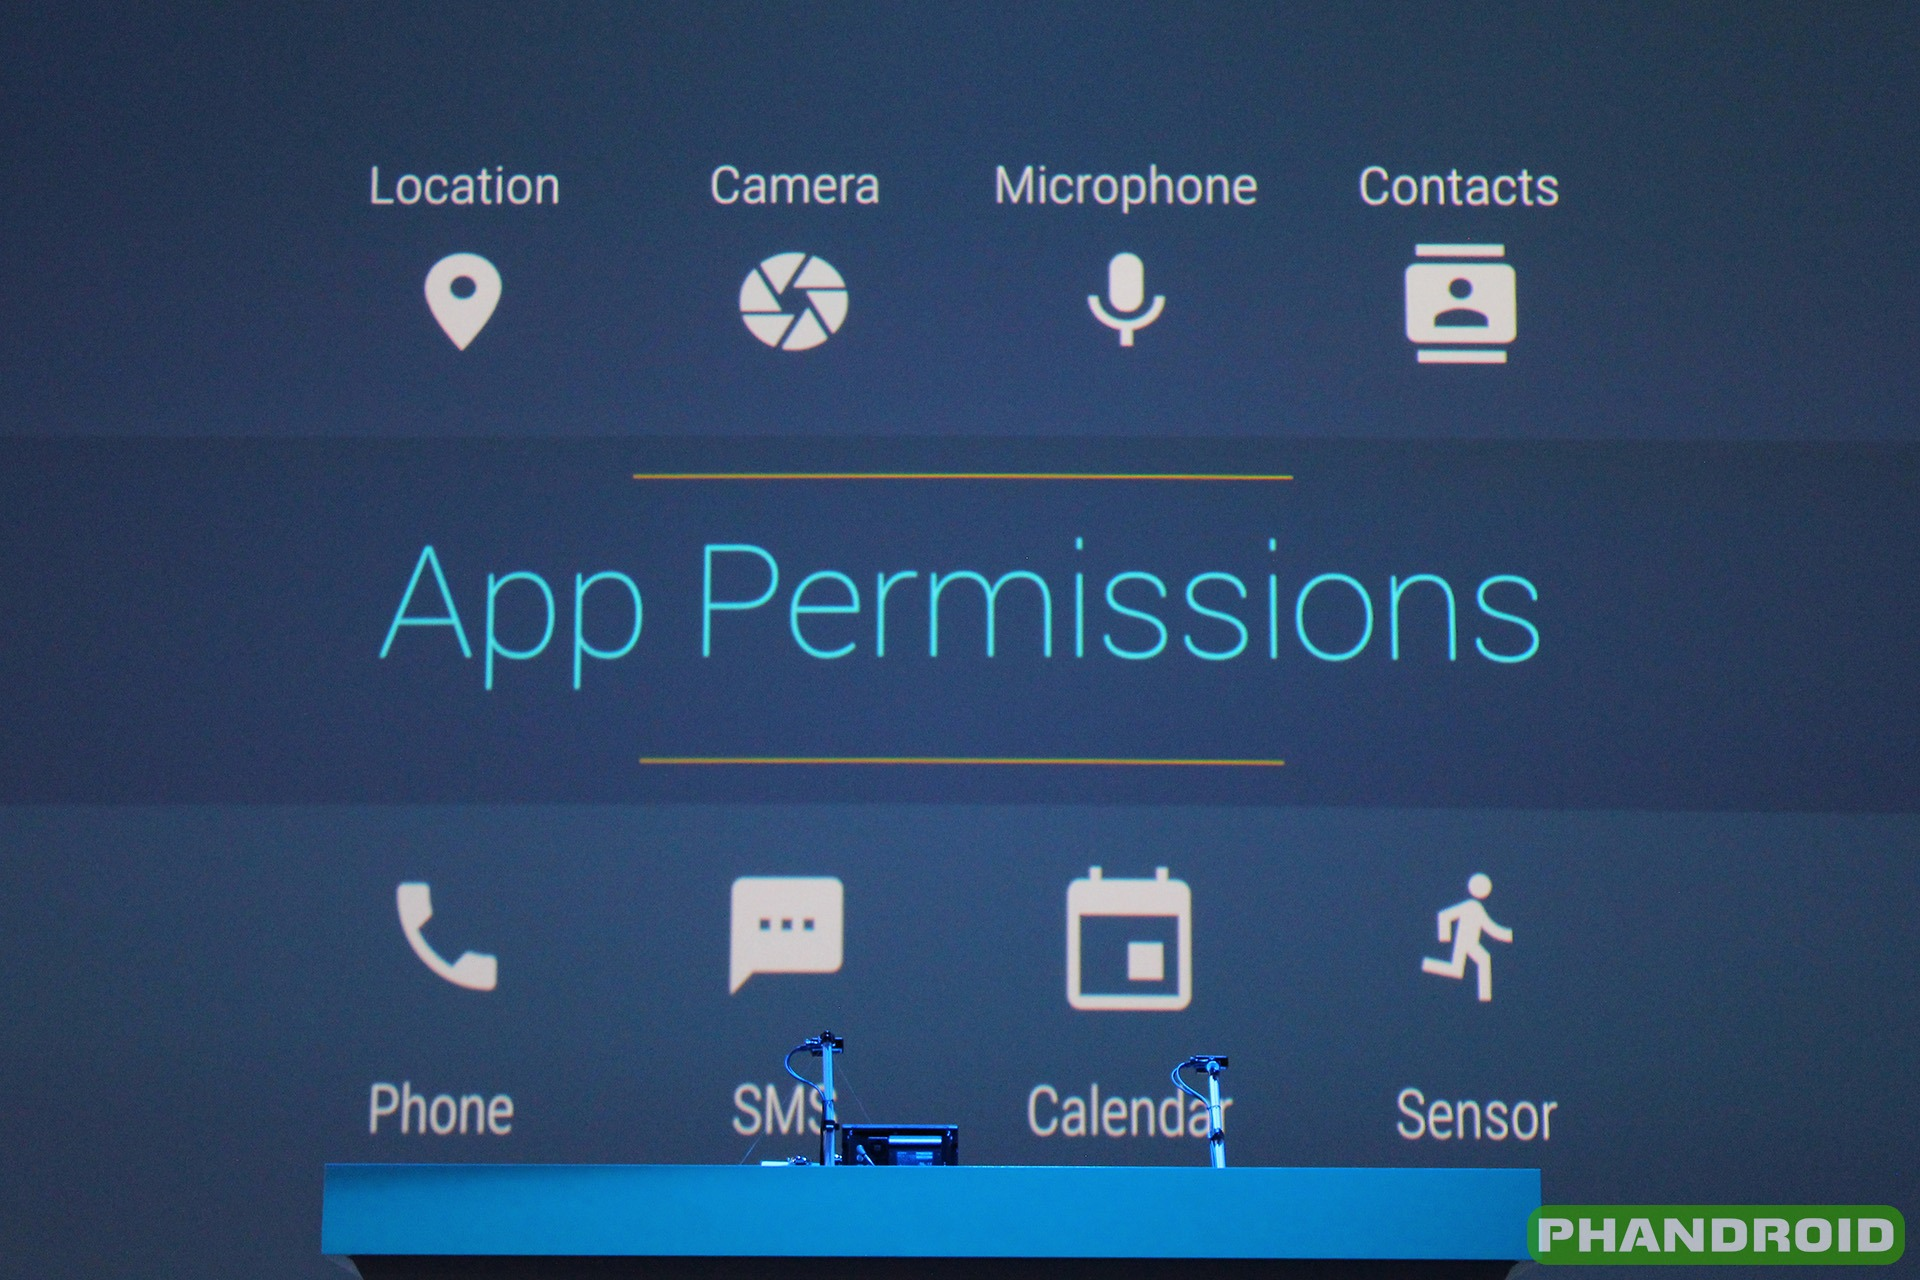 Whether app permission is easy to track or not